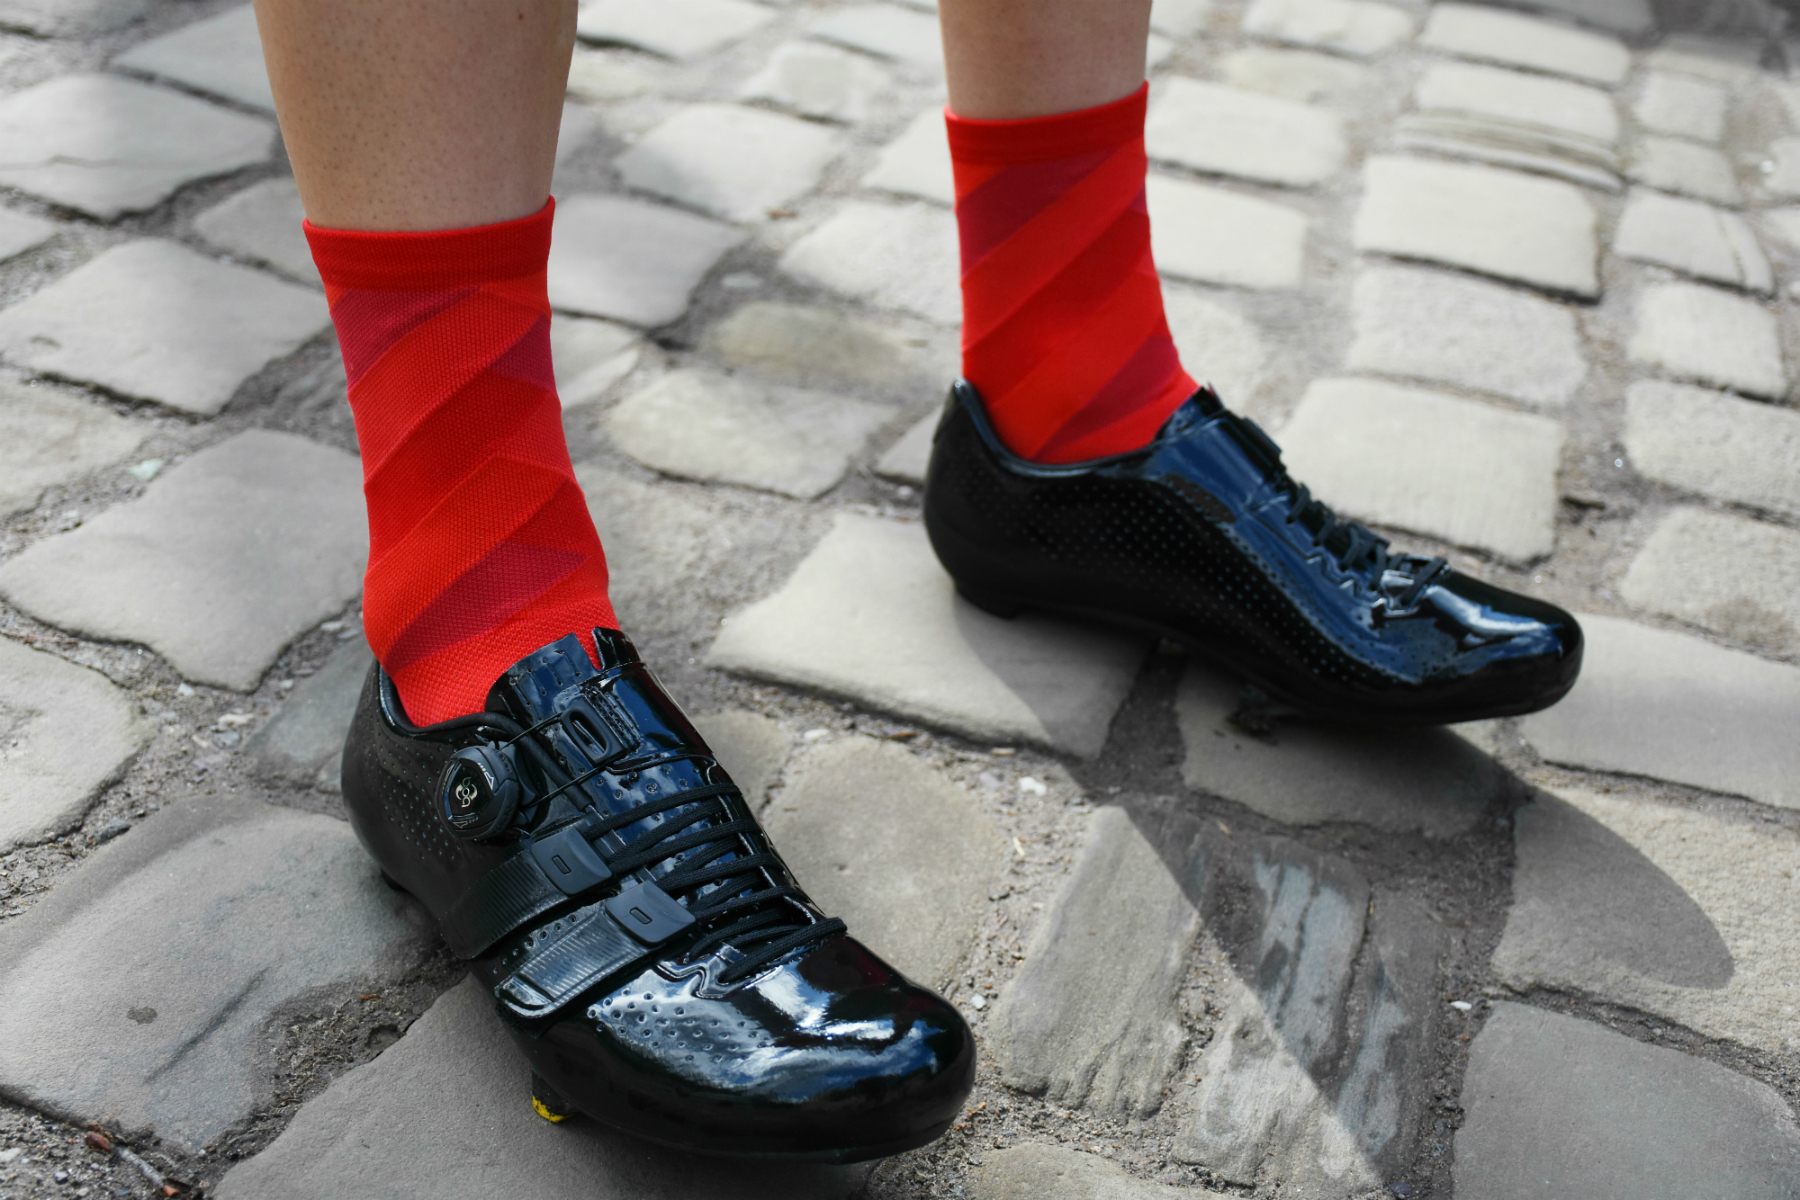 castelli free socks in red